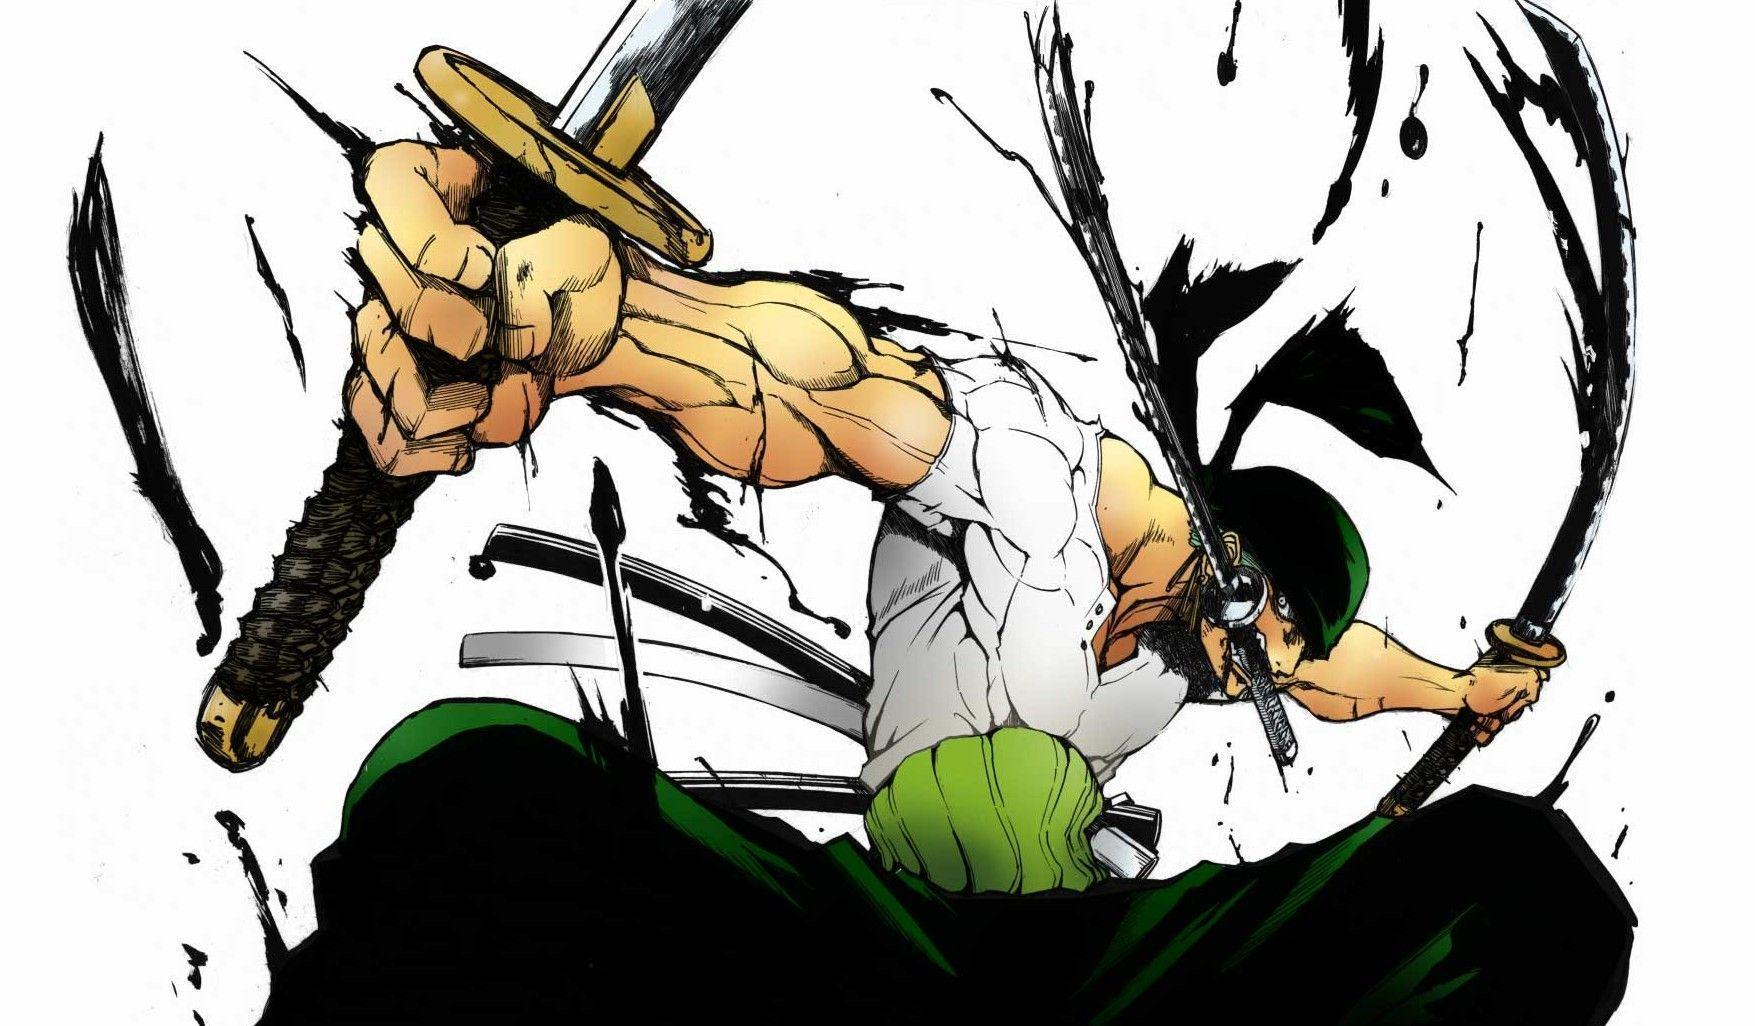 Roronoa Zoro On One Piece Anime Wallpaper  Frenzia